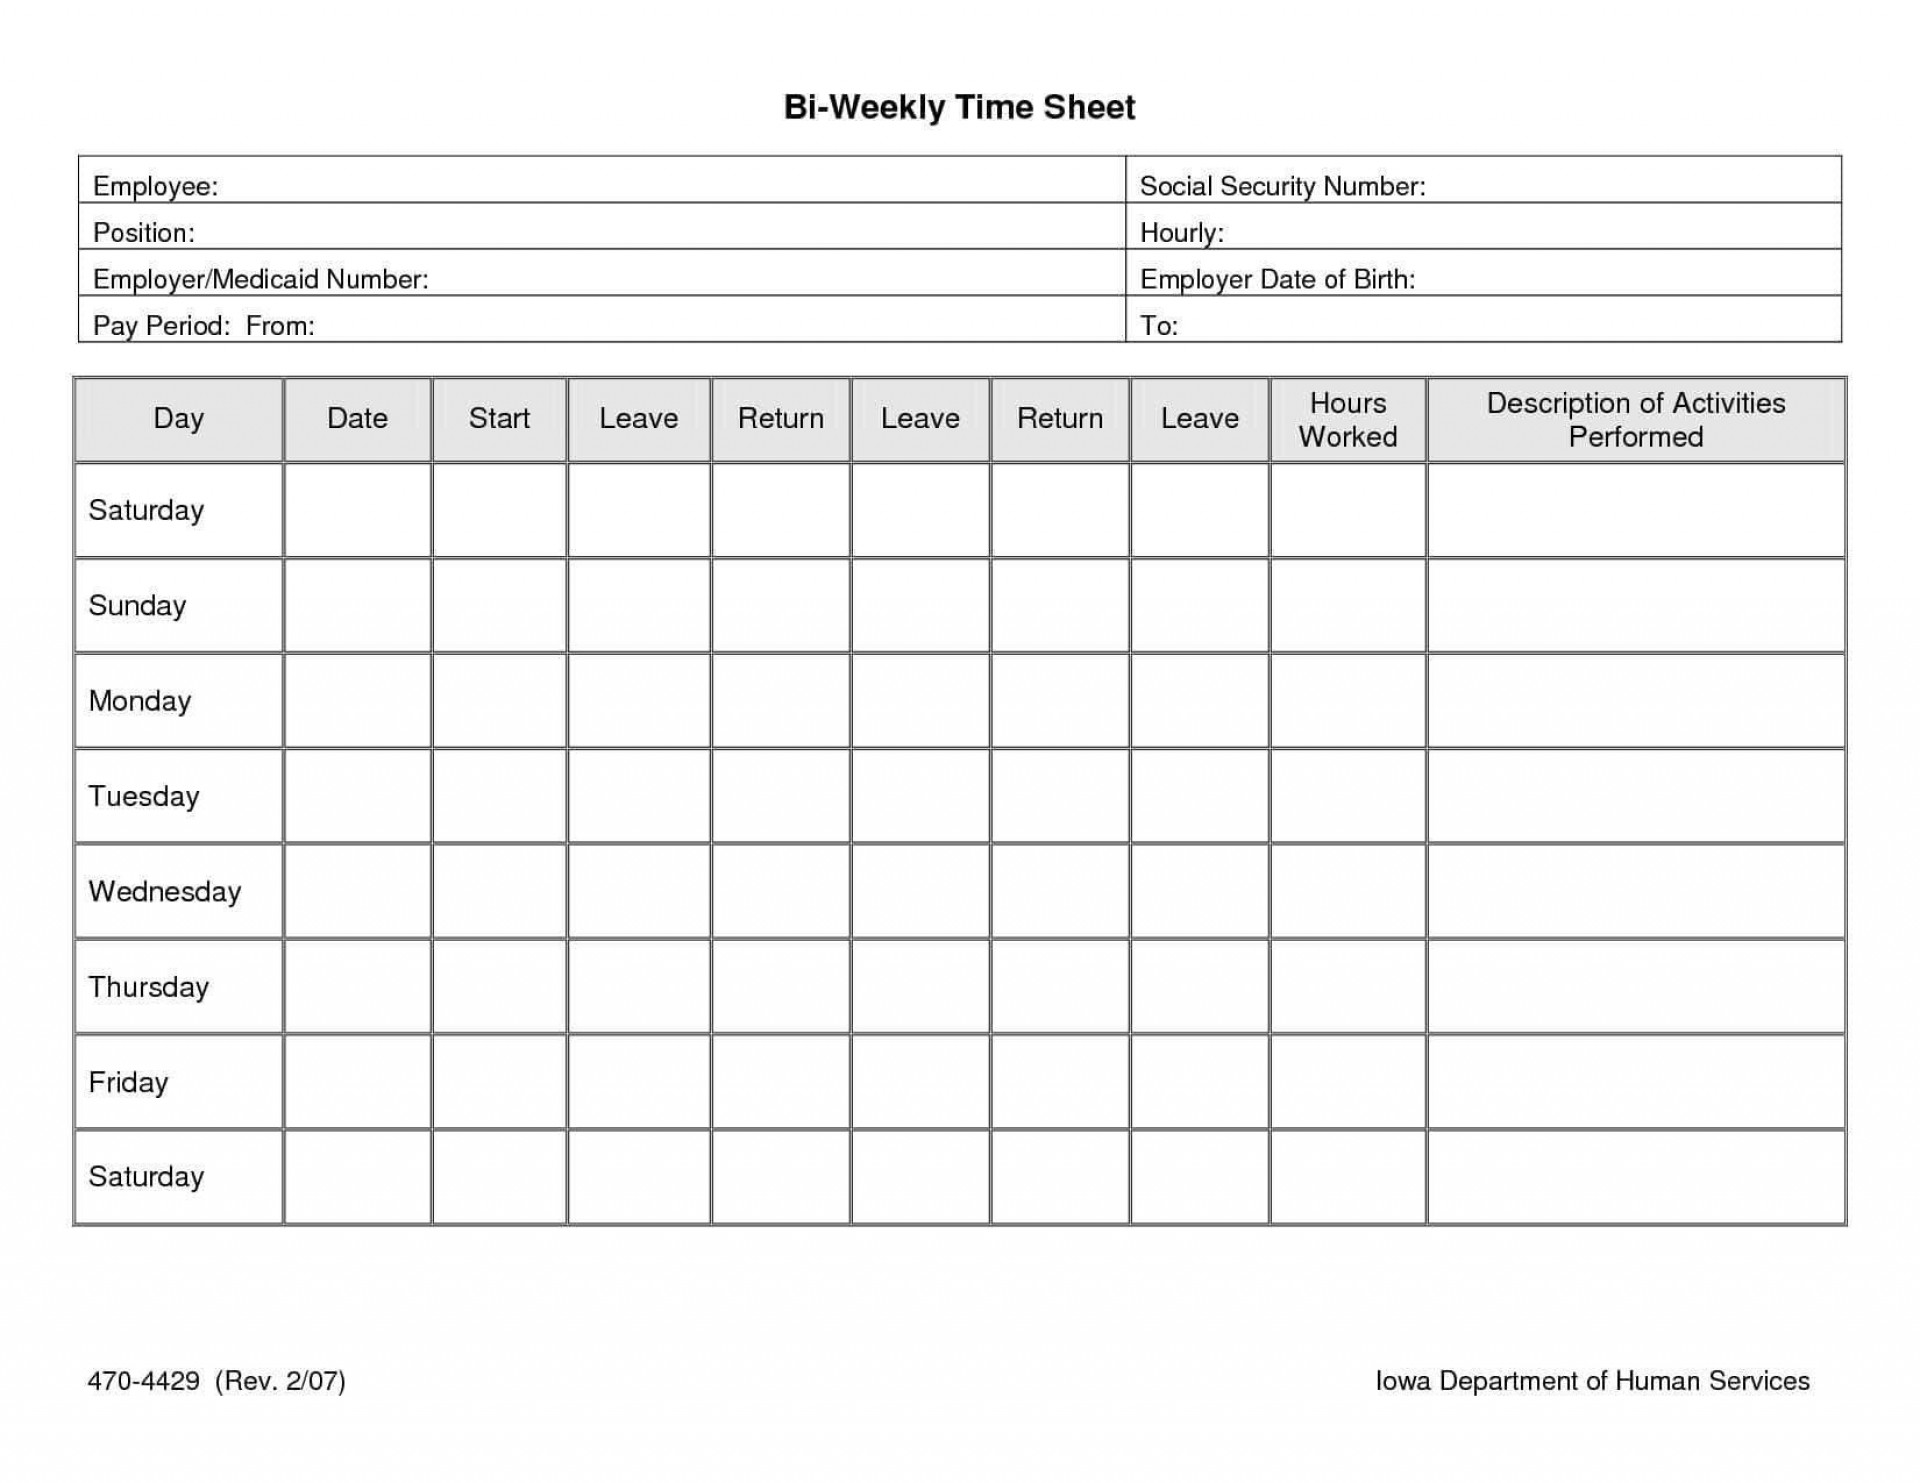 002 Incredible Time Card Template Free Image  Calculator Excel Monthly Biweekly Timesheet1920